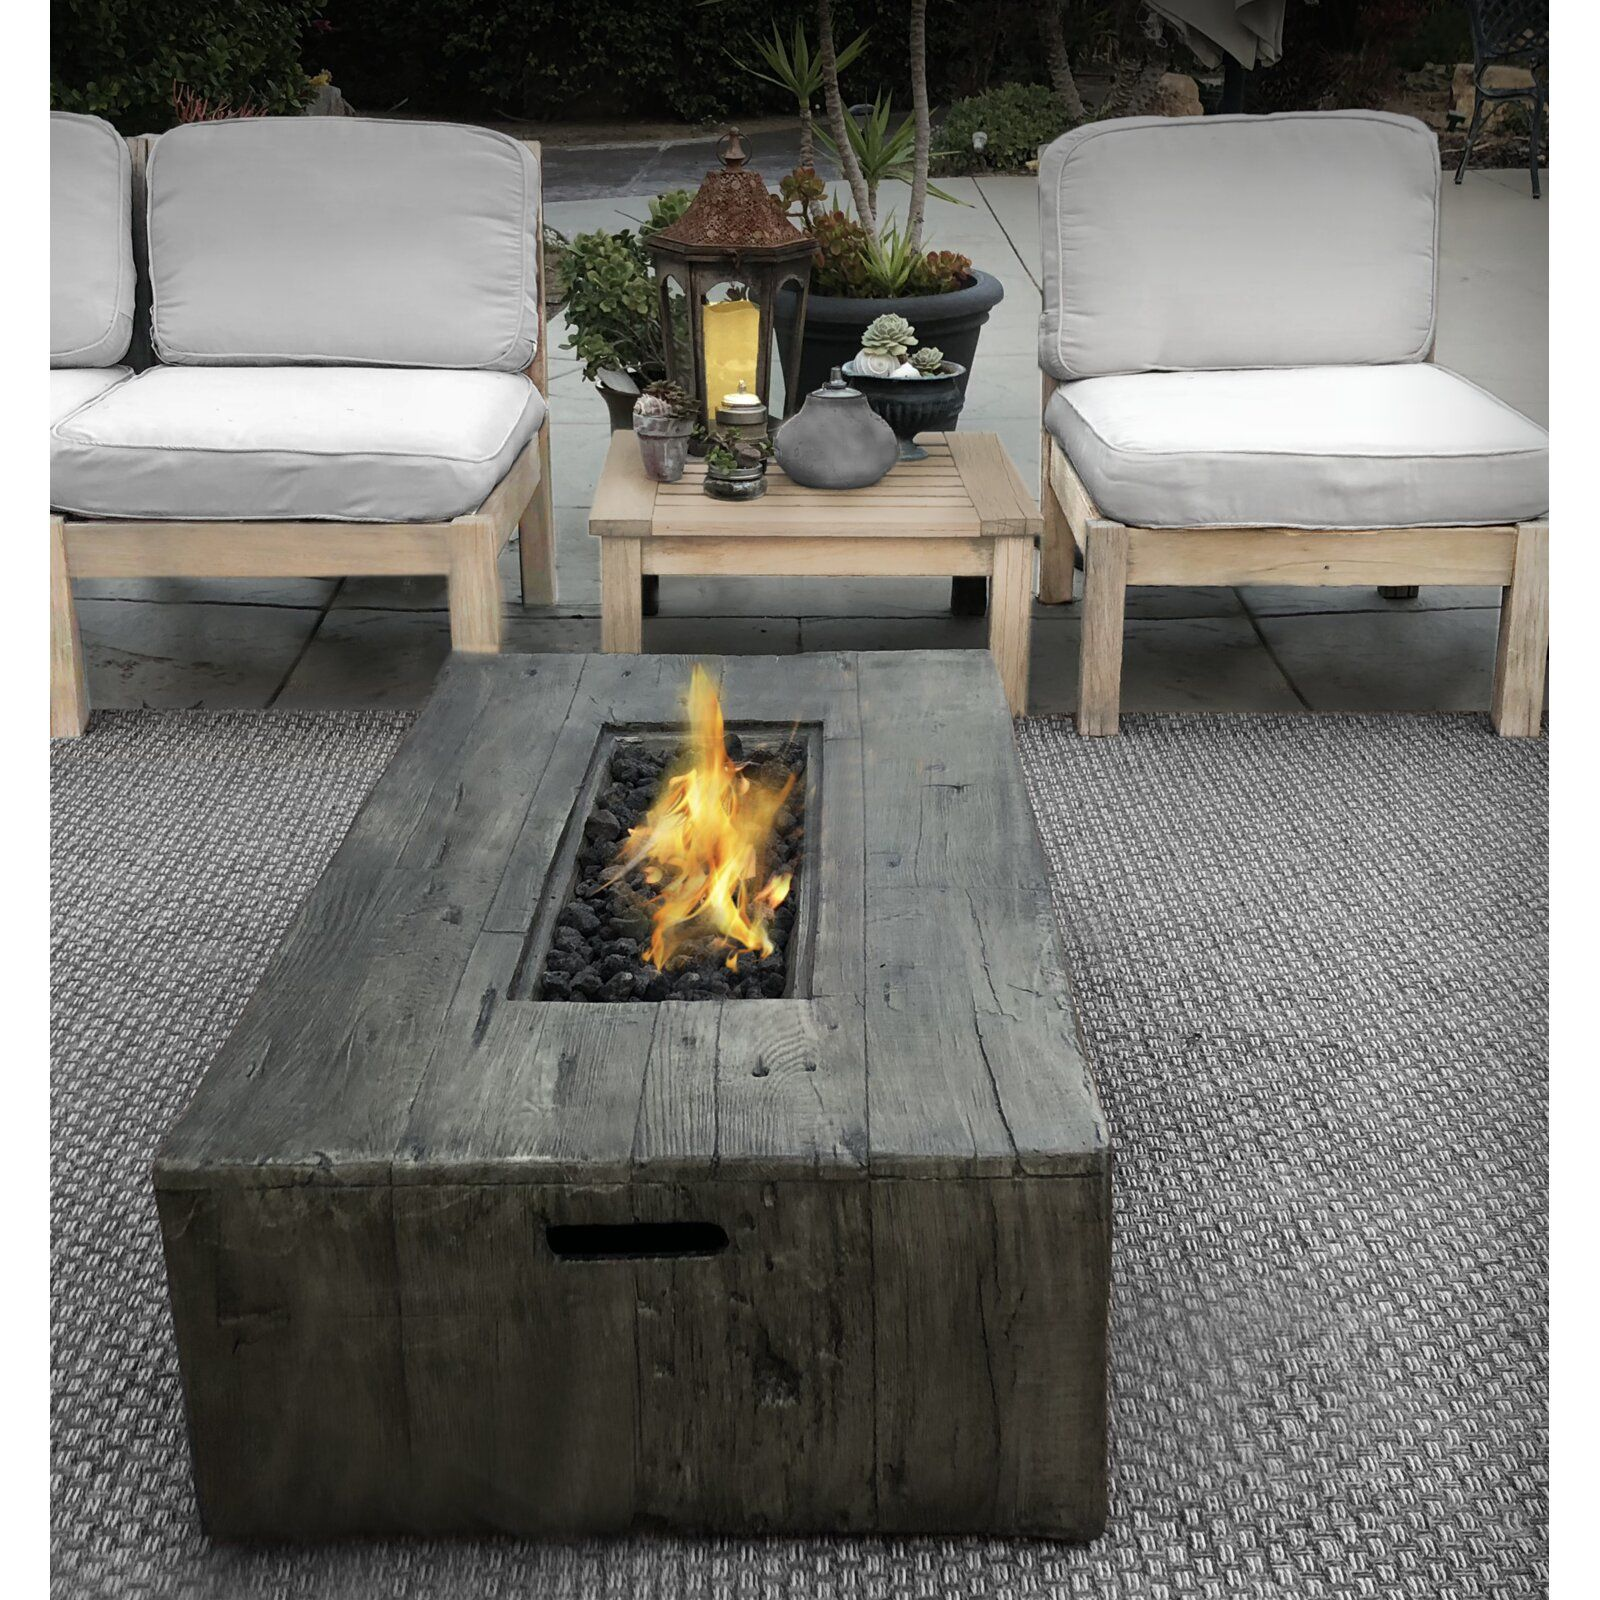 Mobley Propane Natural Gas Fire Pit Table Reviews Allmodern Outside Fire Pits Gas Fire Pit Table Fire Pit Table